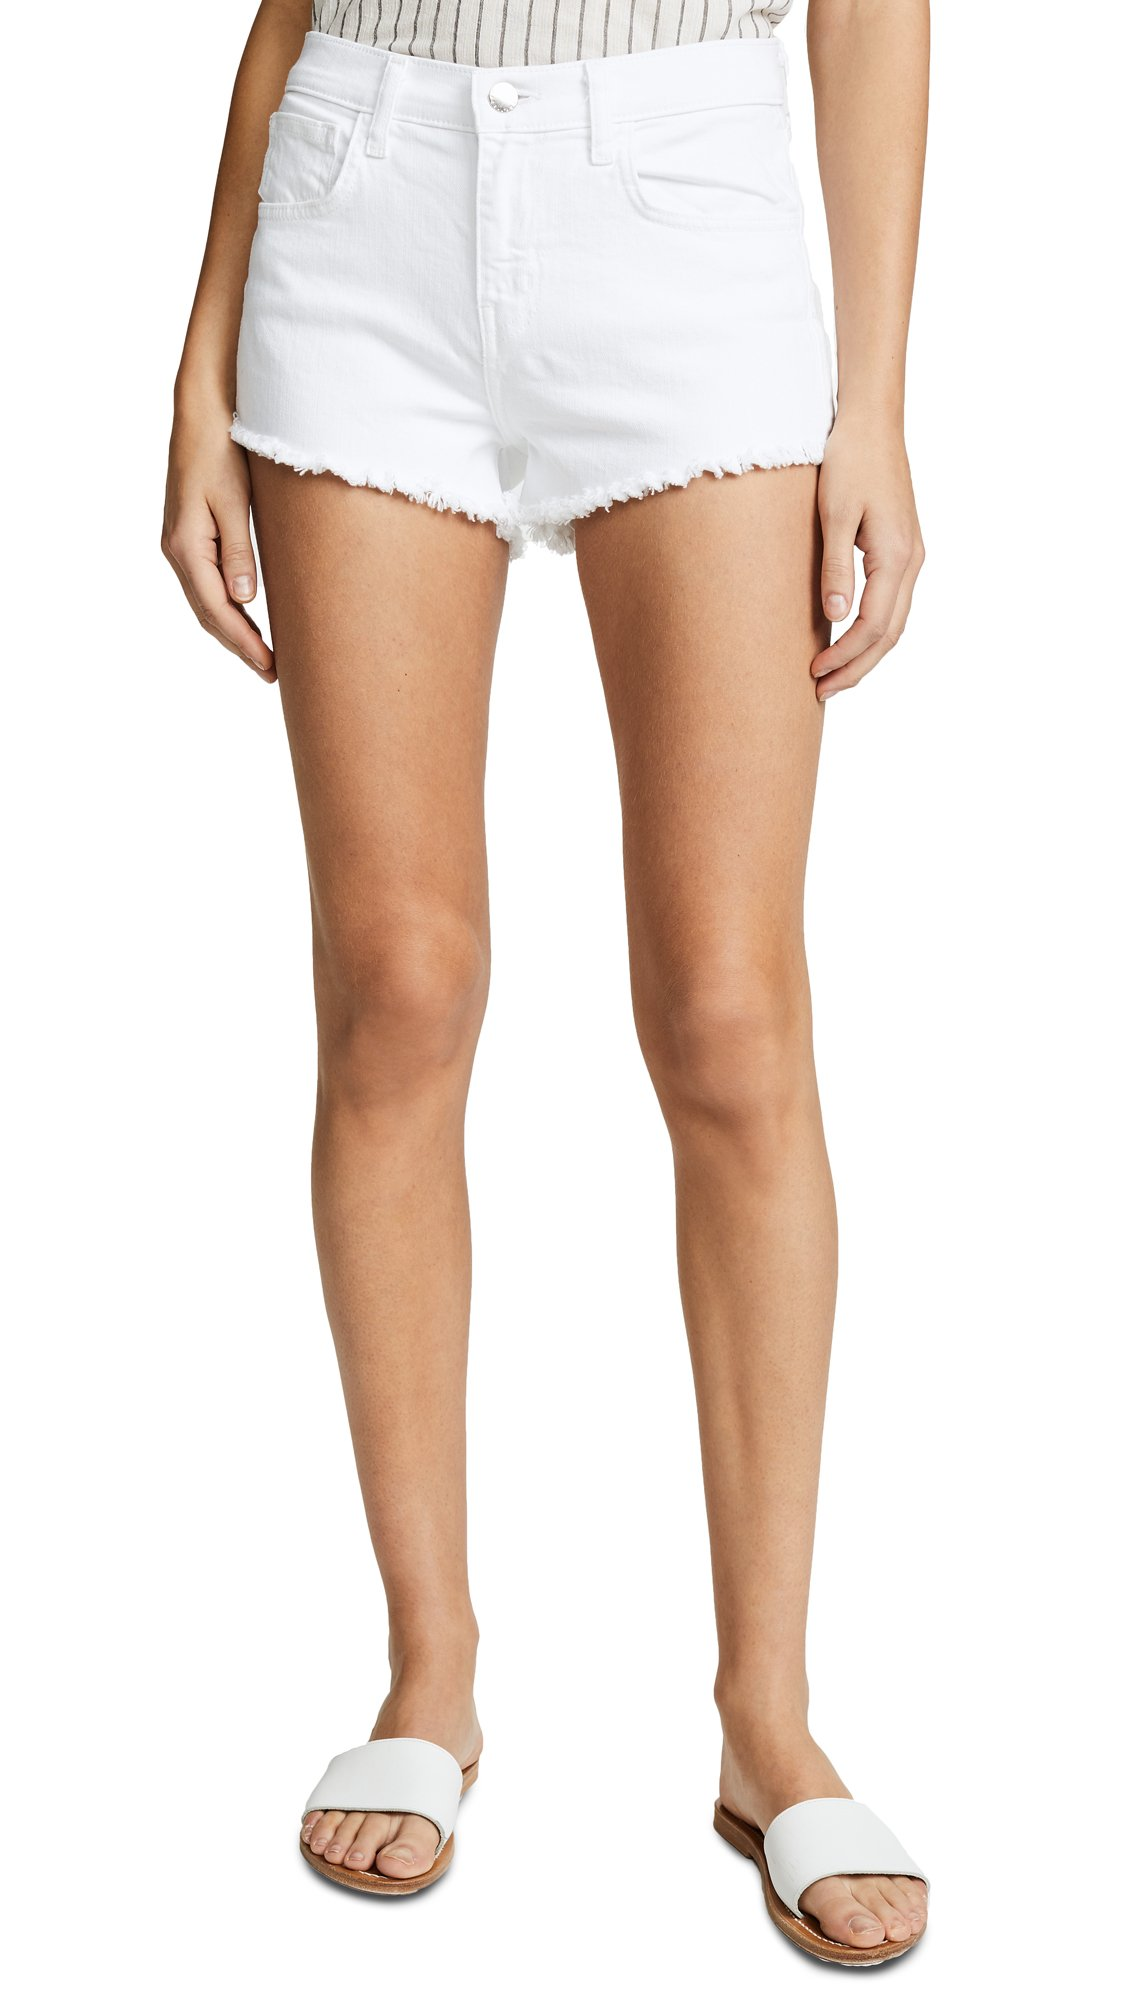 L'AGENCE Women's Zoe Perfect Fit Shorts, Blanc, 26